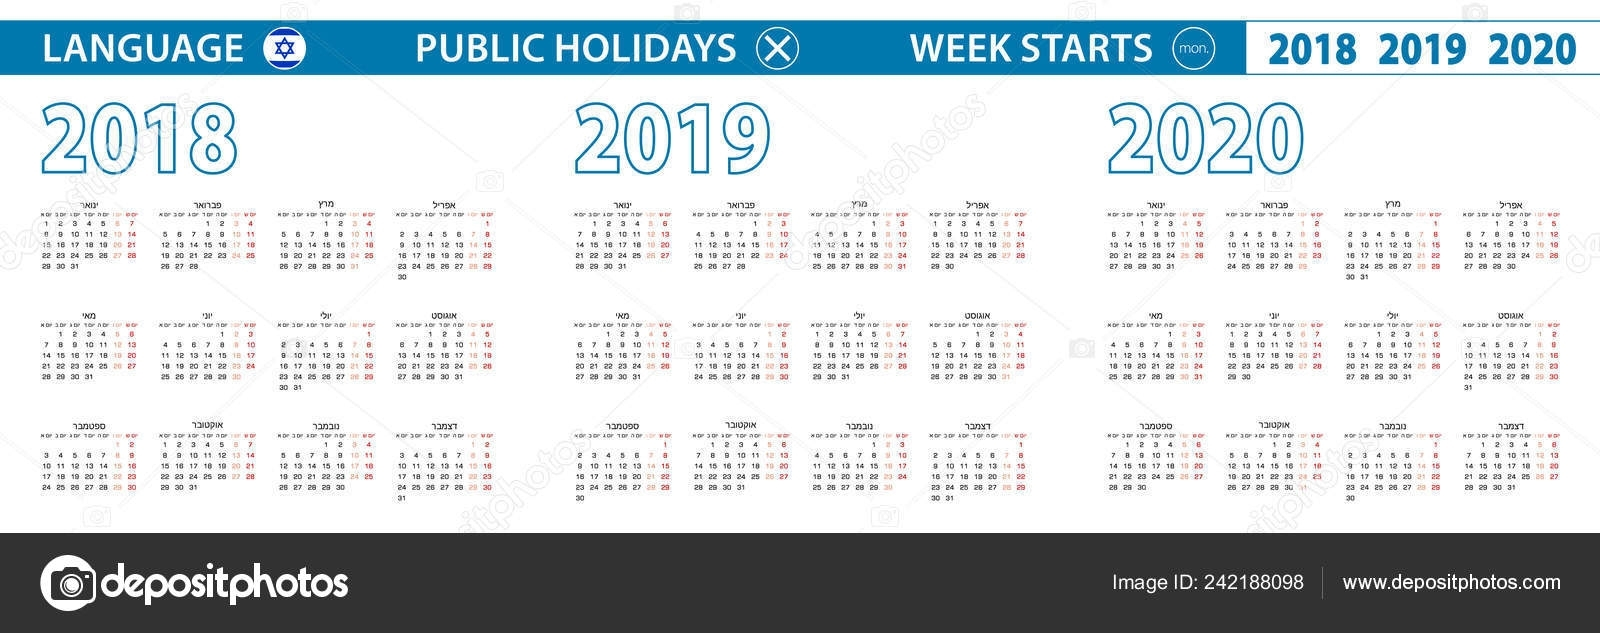 Simple Calendar Template Hebrew 2018 2019 2020 Years Week Starts in 2019-2020 Hebrew Calendar